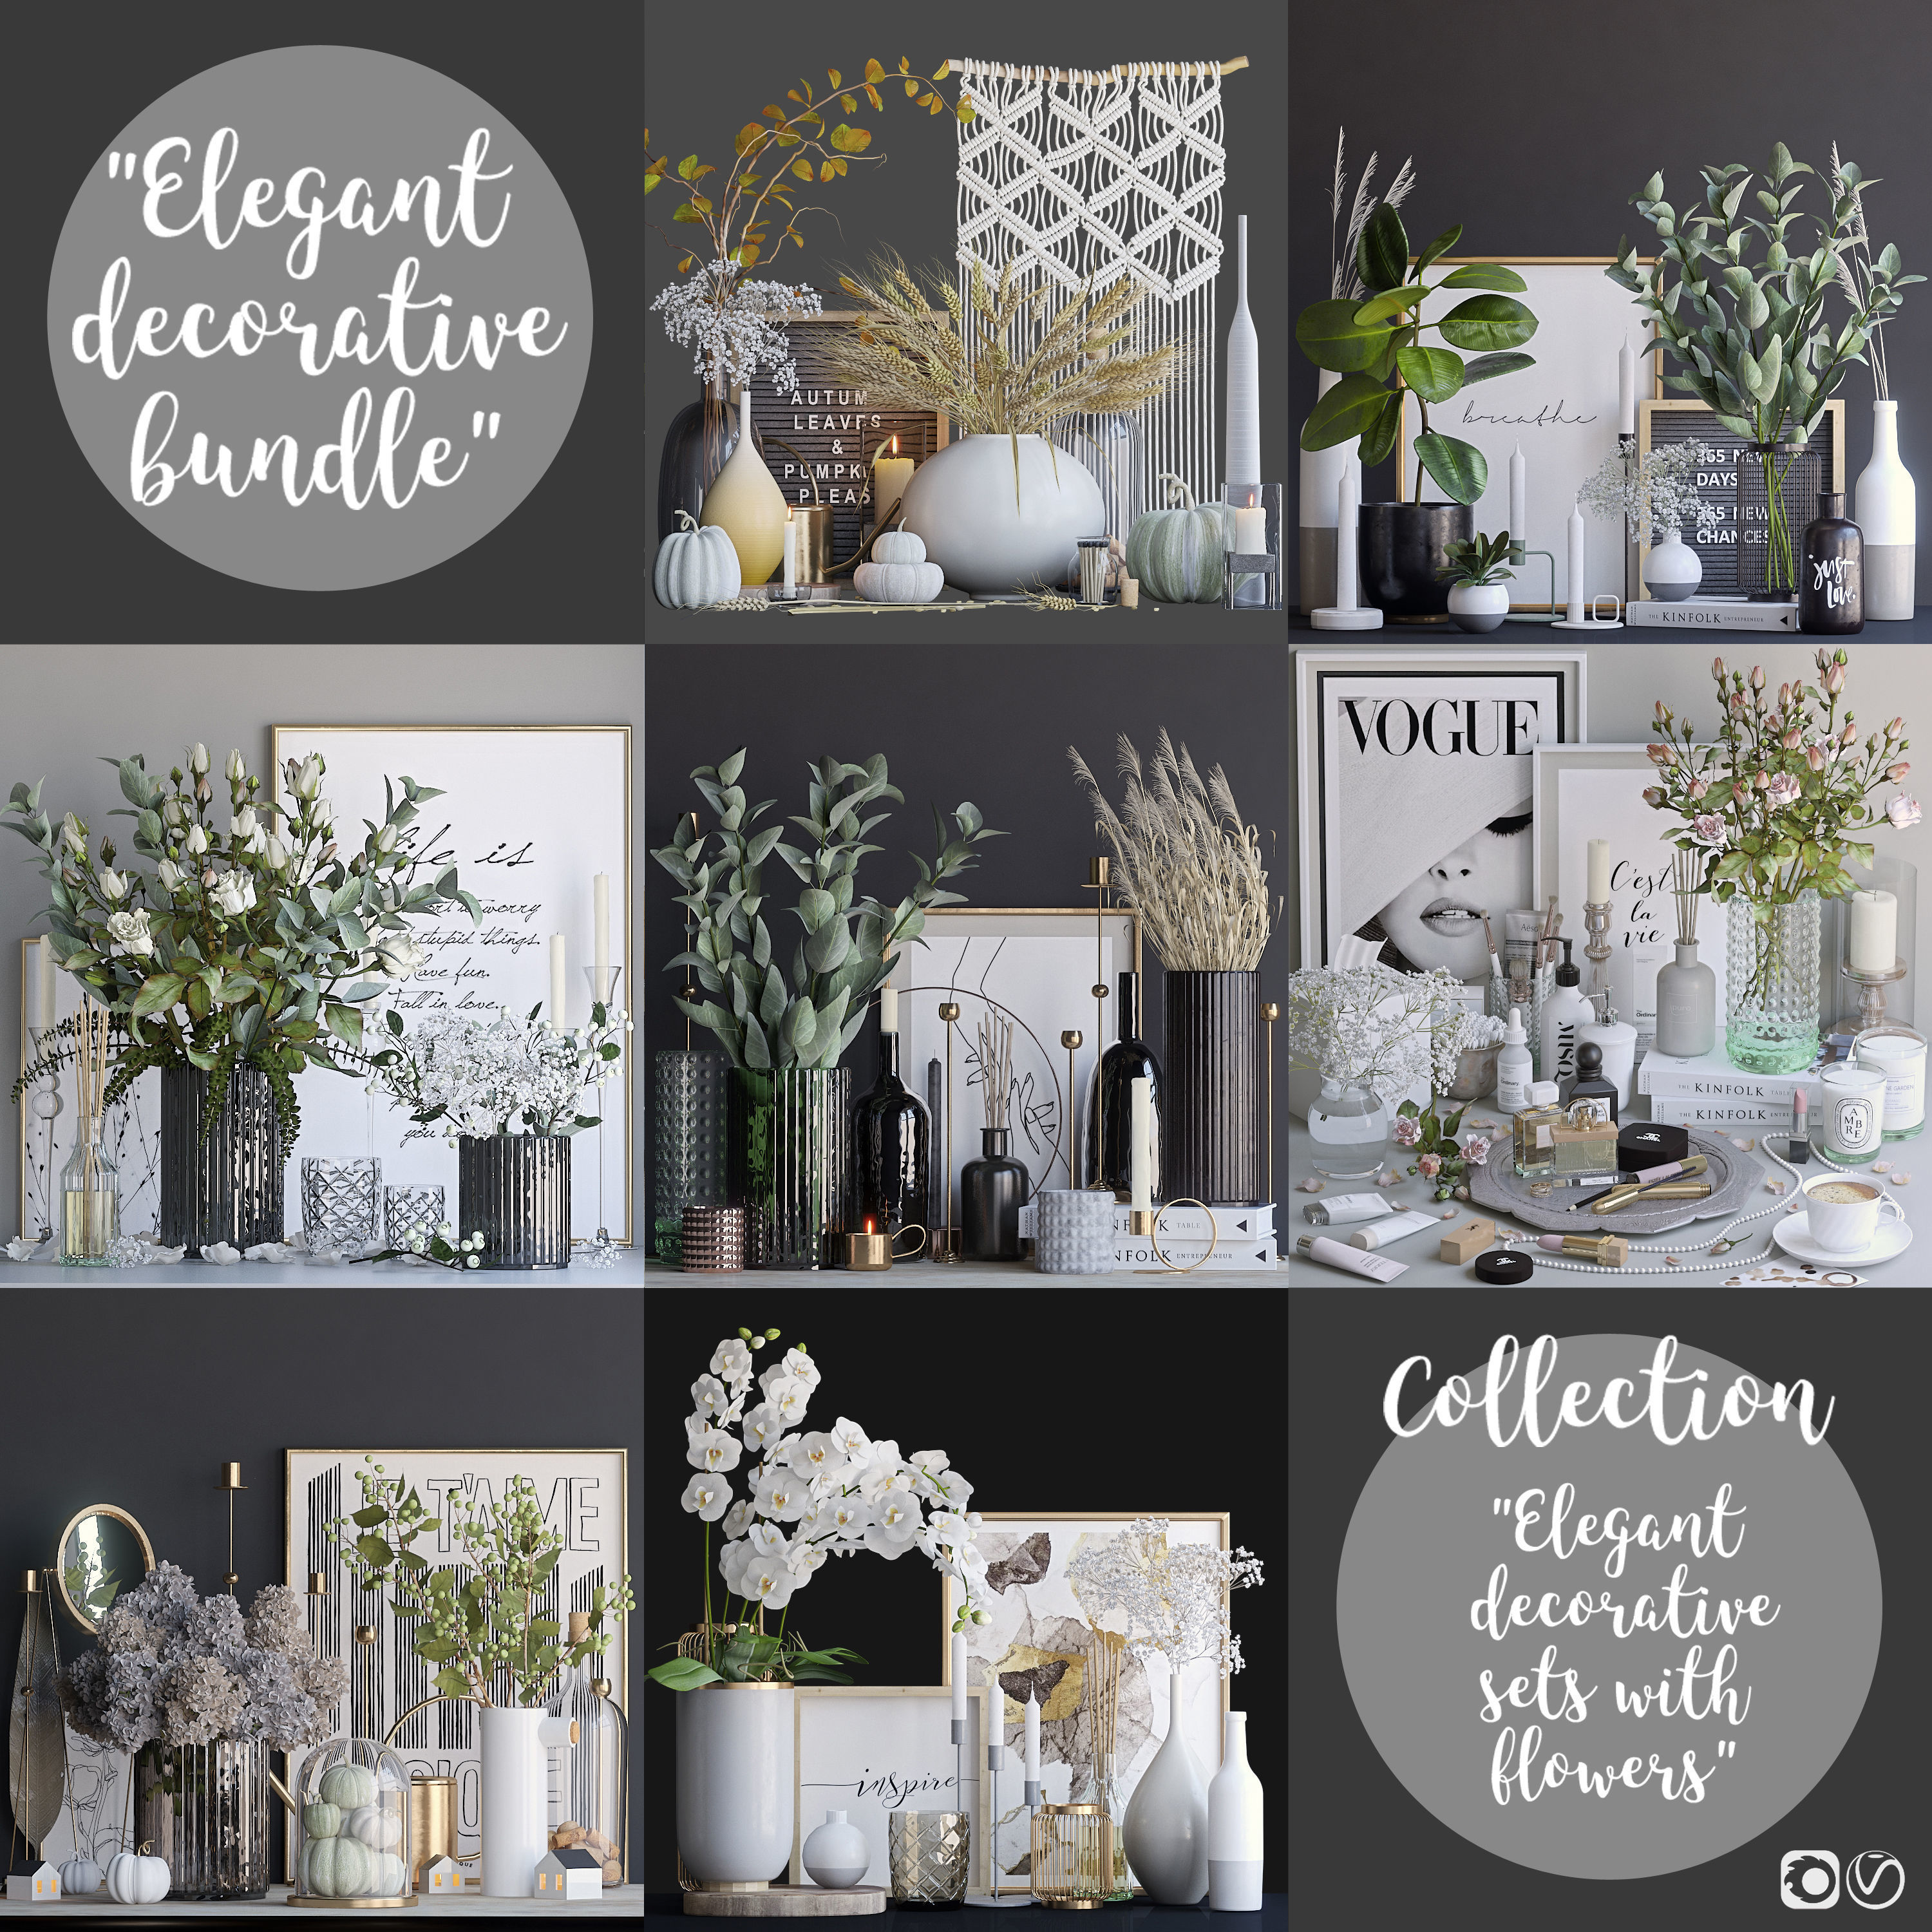 Elegant decorative sets - 1